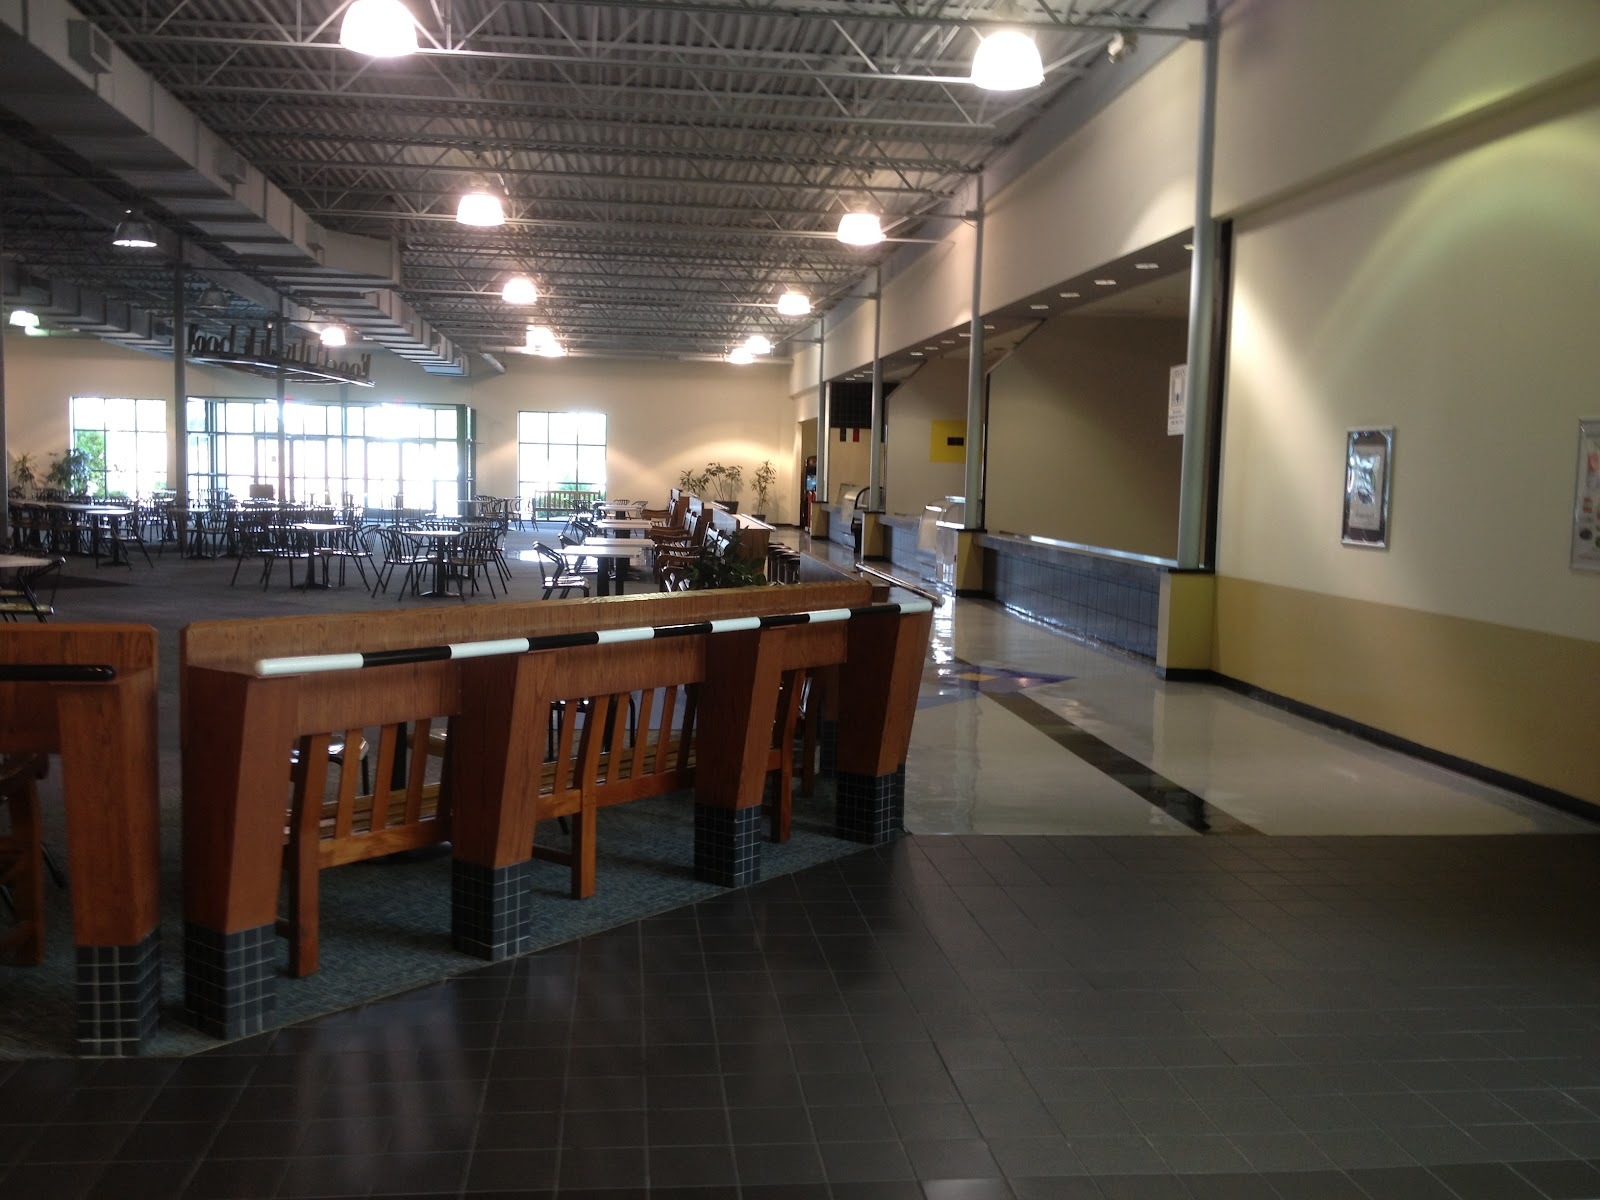 University Mall Carbondale Food Court